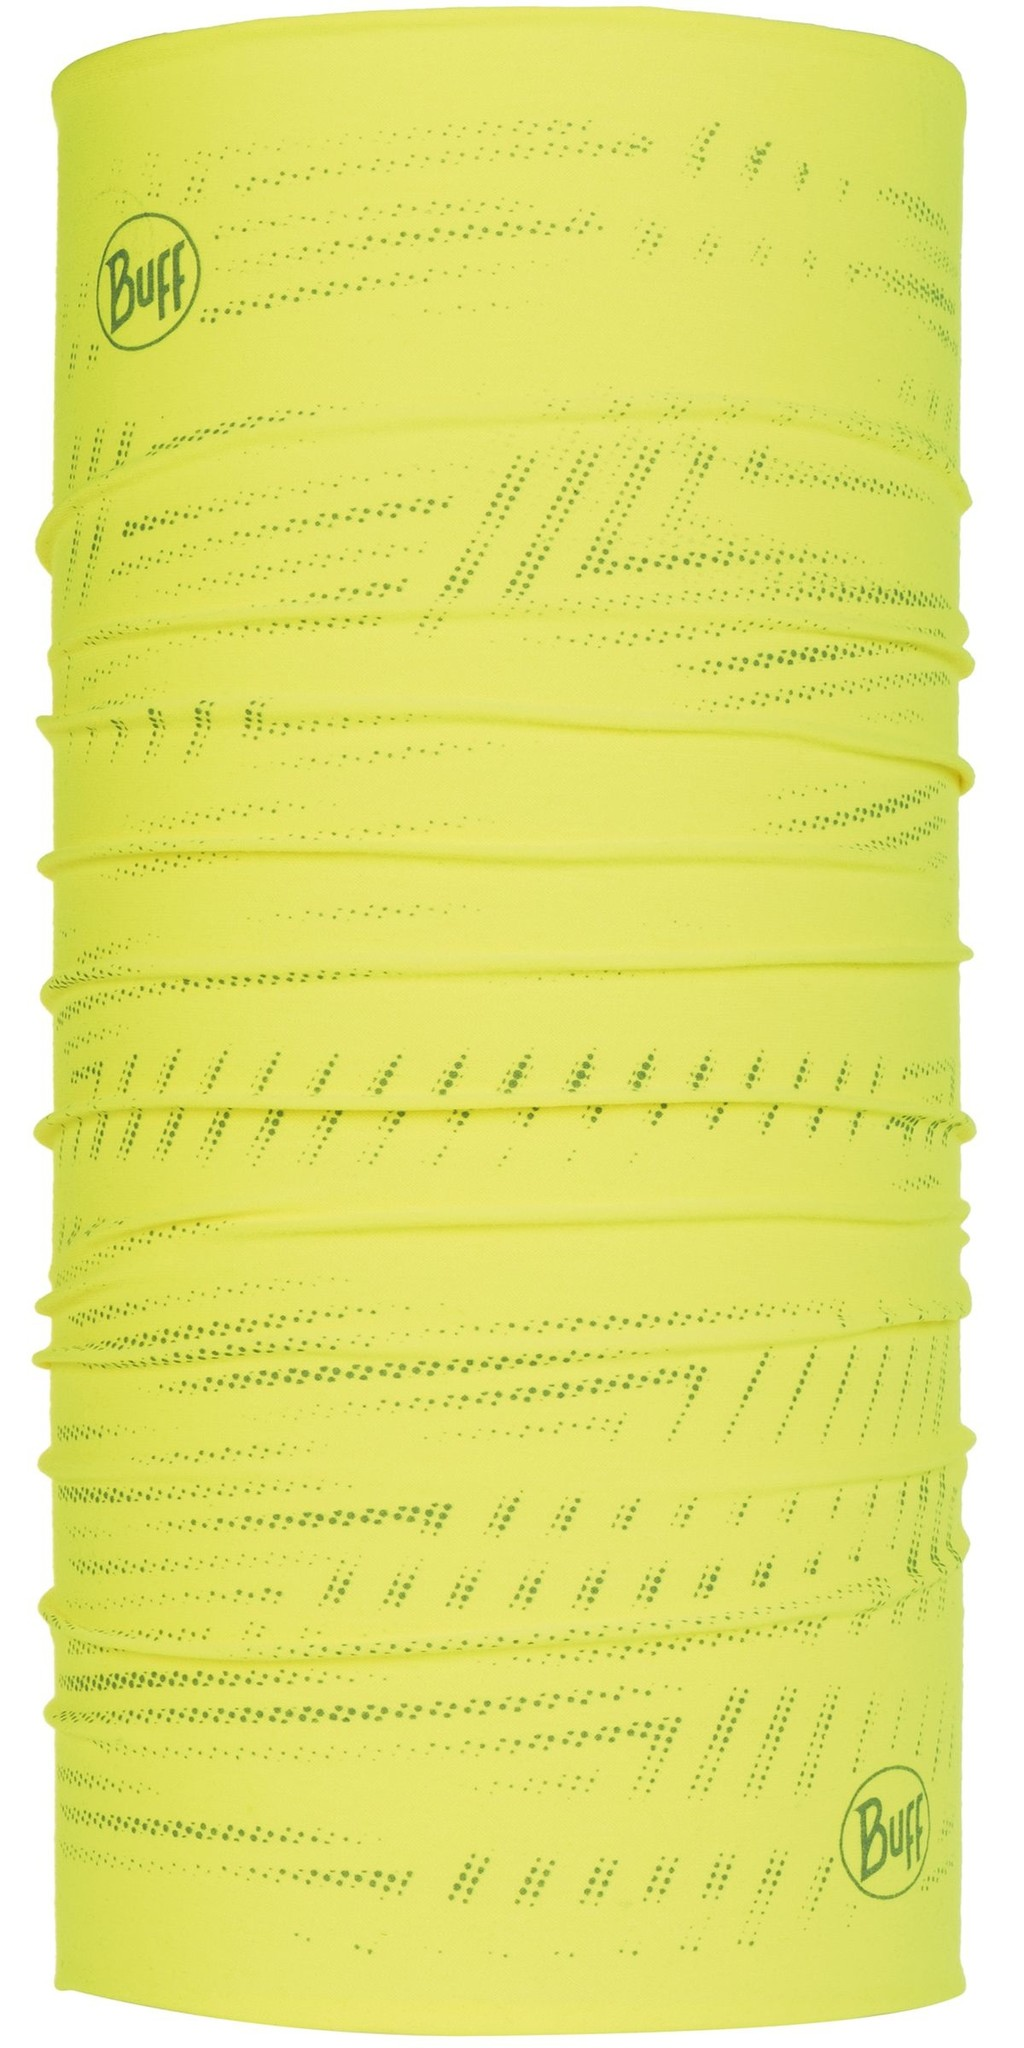 Buff, Inc Buff Original Multifunctional Headwear Reflective